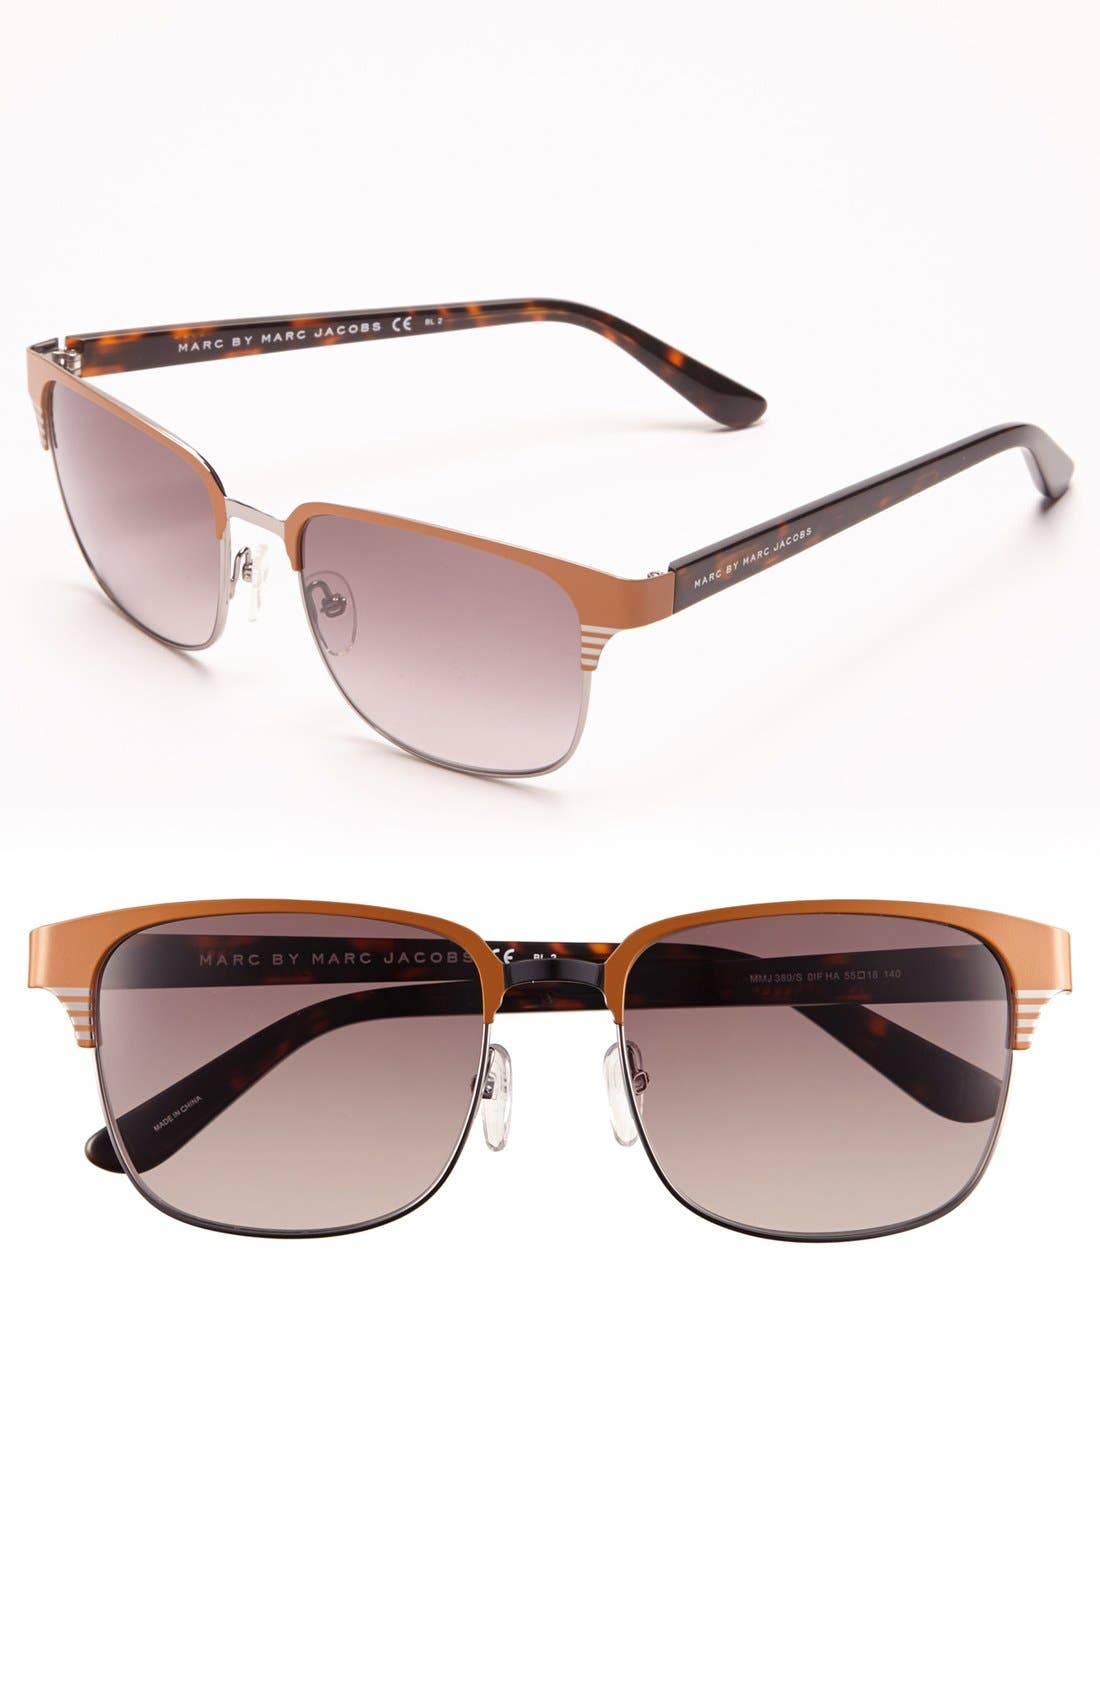 Alternate Image 1 Selected - MARC BY MARC JACOBS 55mm Stainless Steel Sunglasses